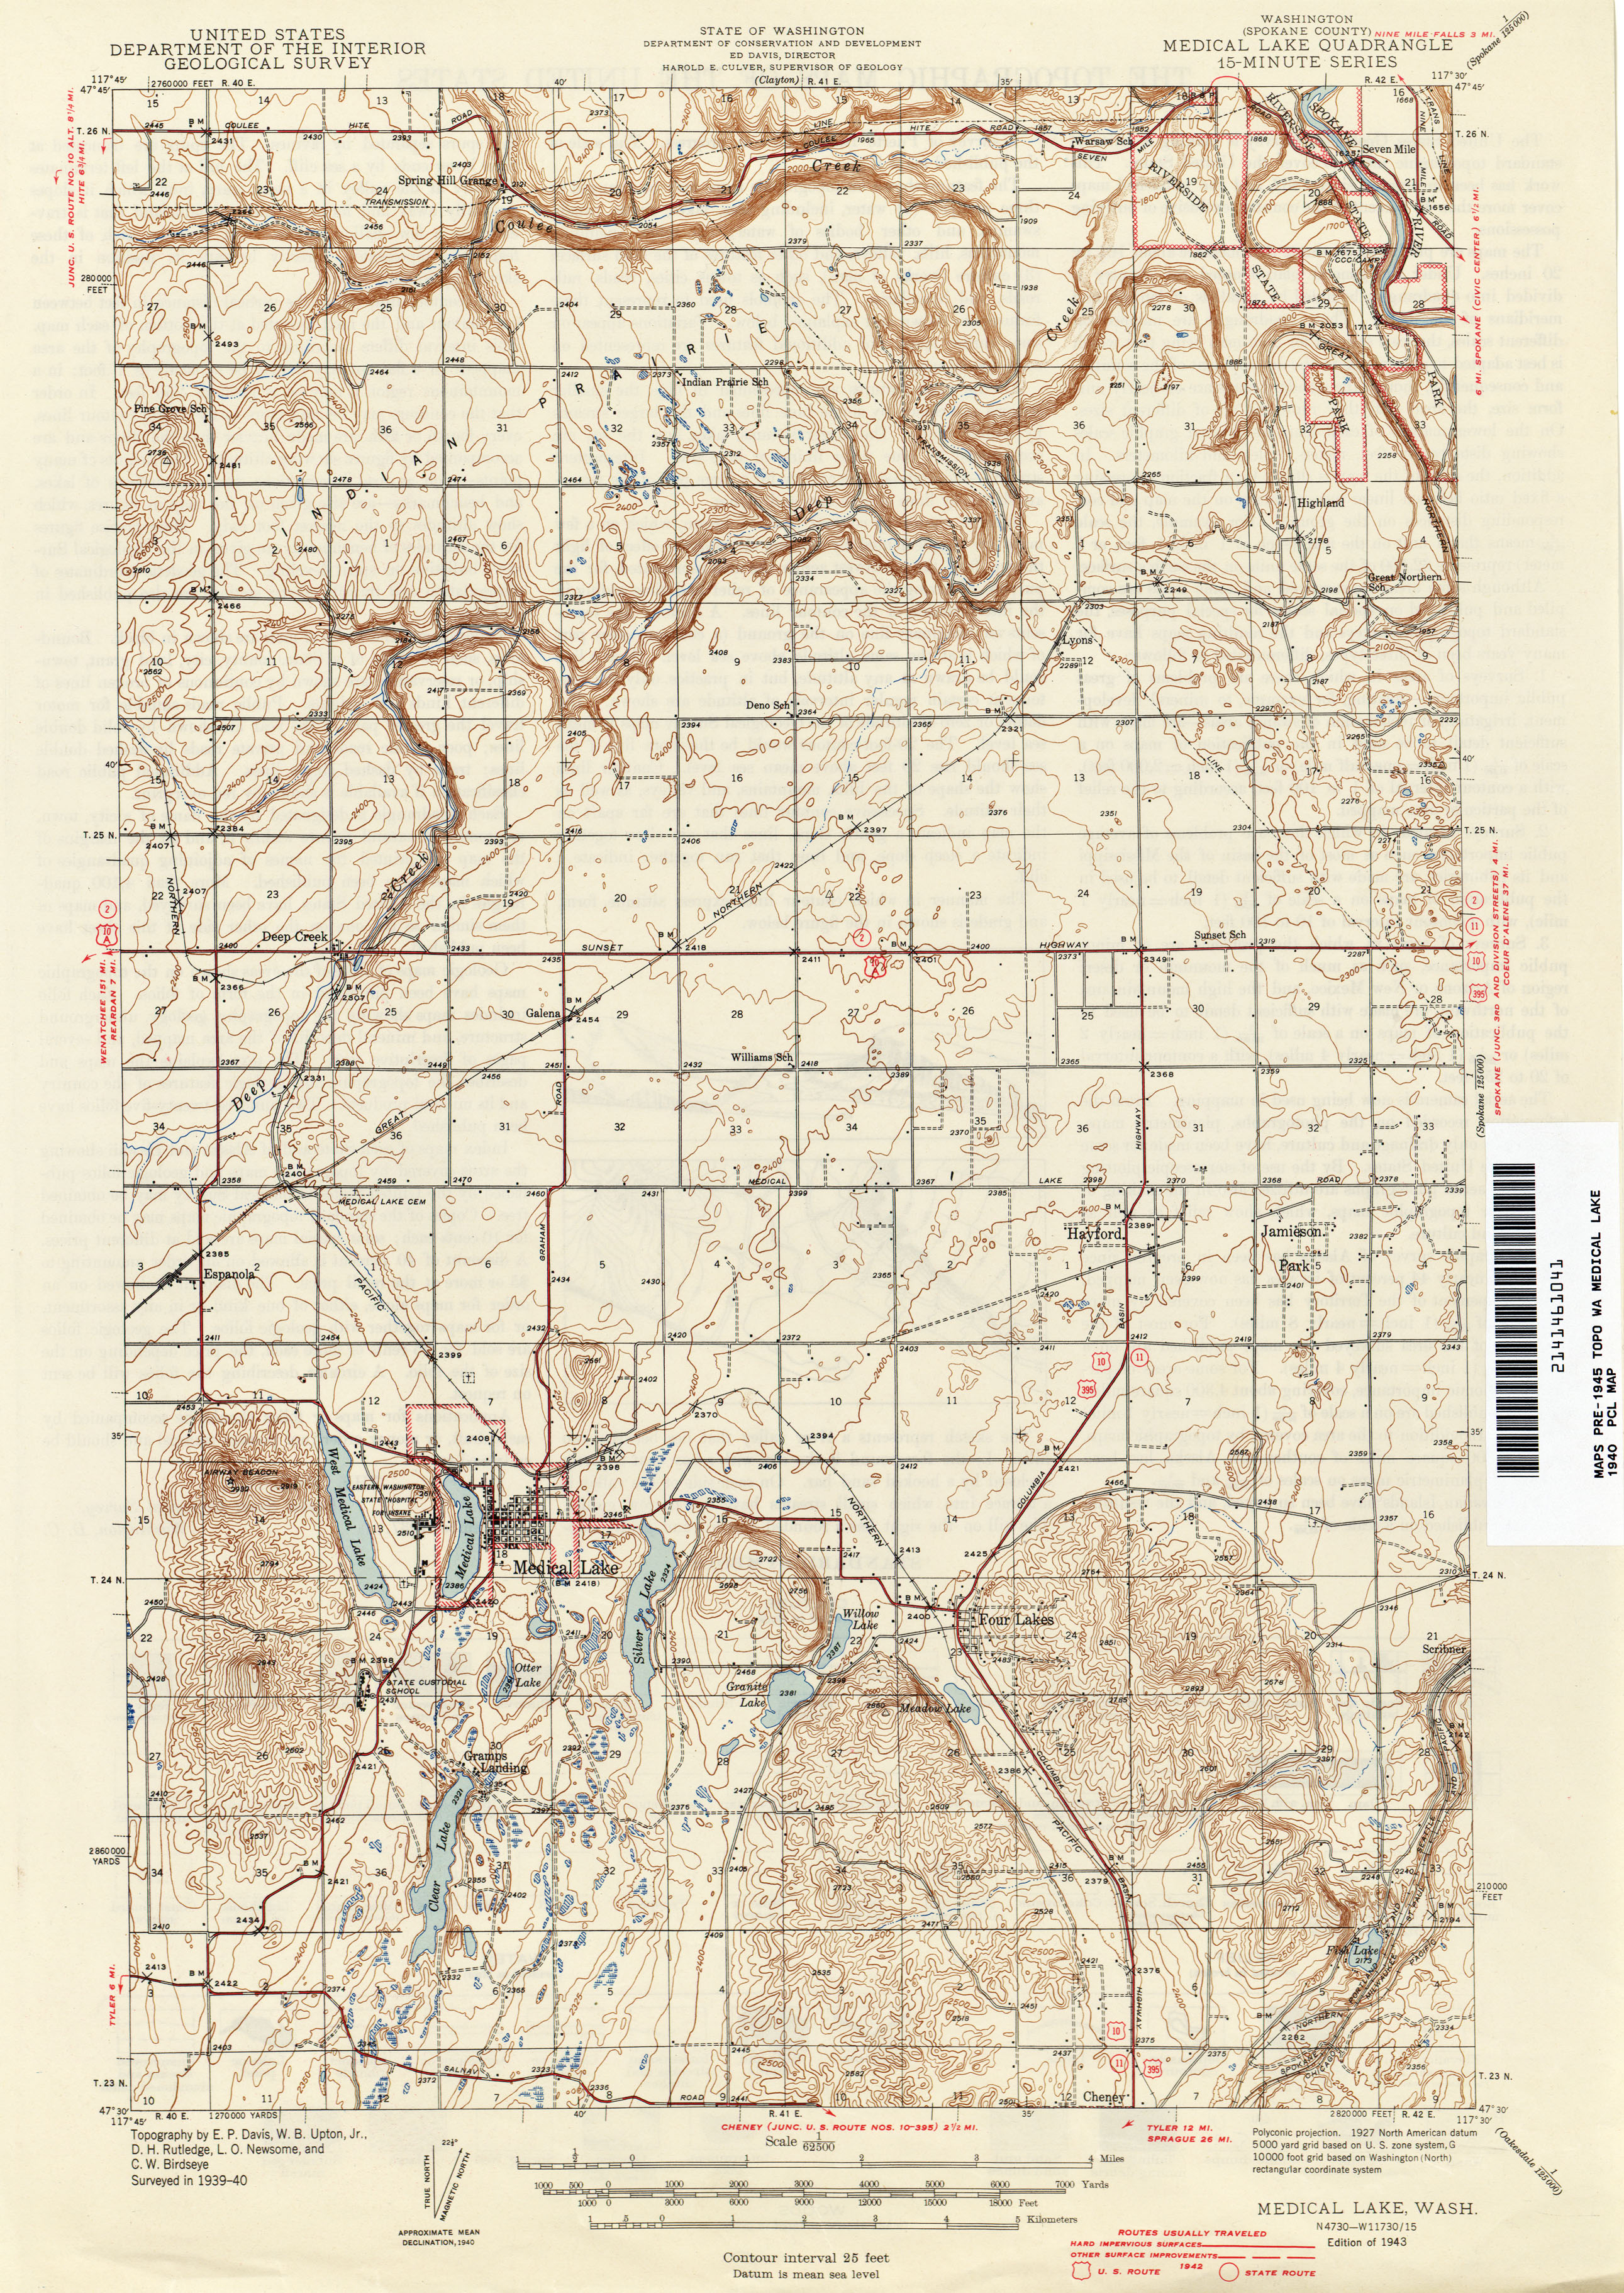 Washington Historical Topographic Maps - Perry-Castañeda Map ... on us map of united states with major cities, us map eastern canada, us map with cities and mountains, us map guam, us map with states labeled, us map 1776, us map rivers and lakes, us map by state, us map midwest united states, us map of the united states, us map northeastern united states, us map world, us map 1860 united states,